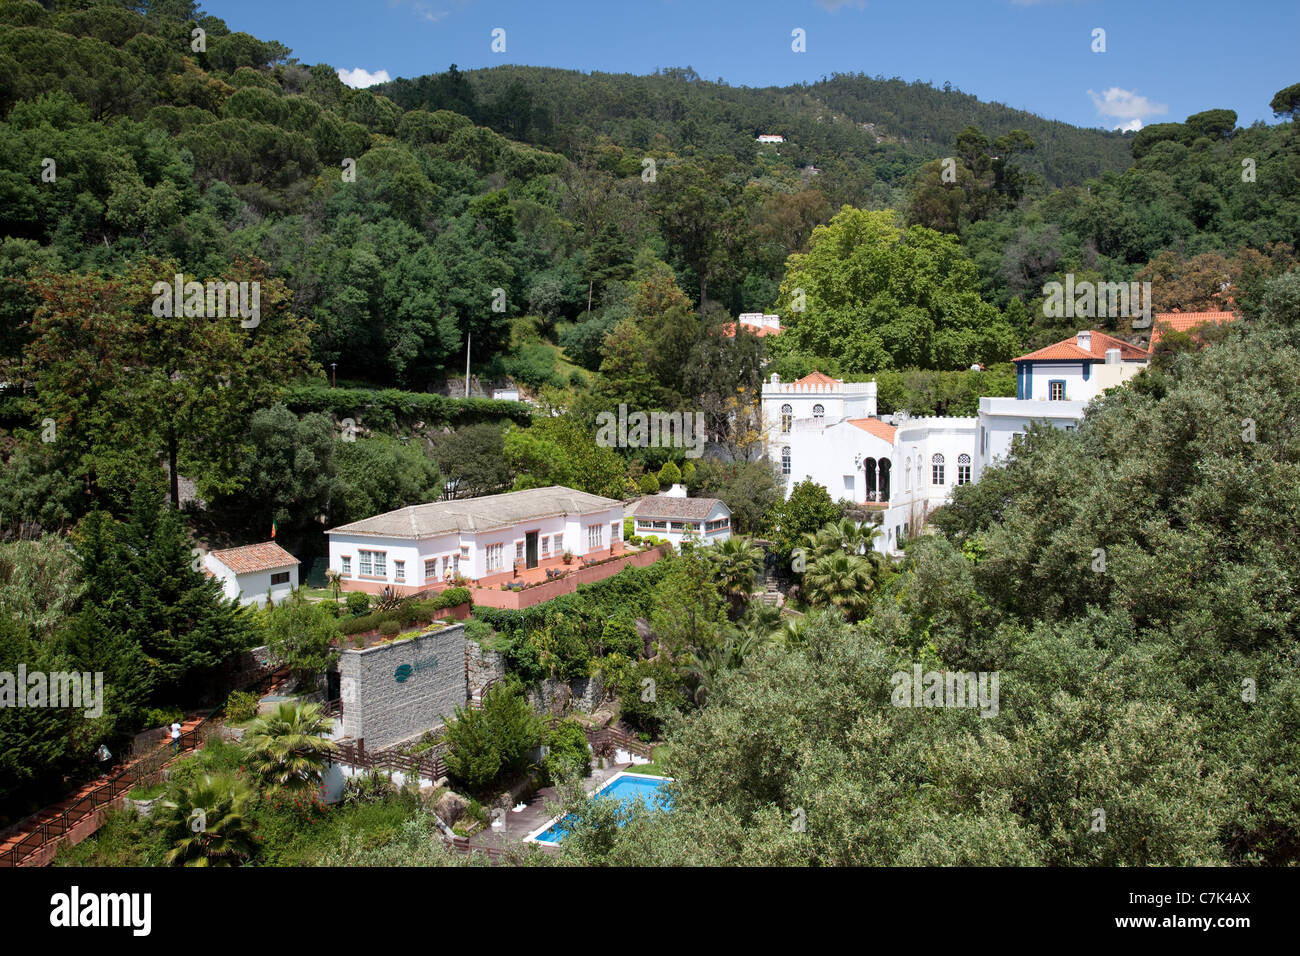 Portugal, Algarve, Caldas De Monchique, View of Village - Stock Image